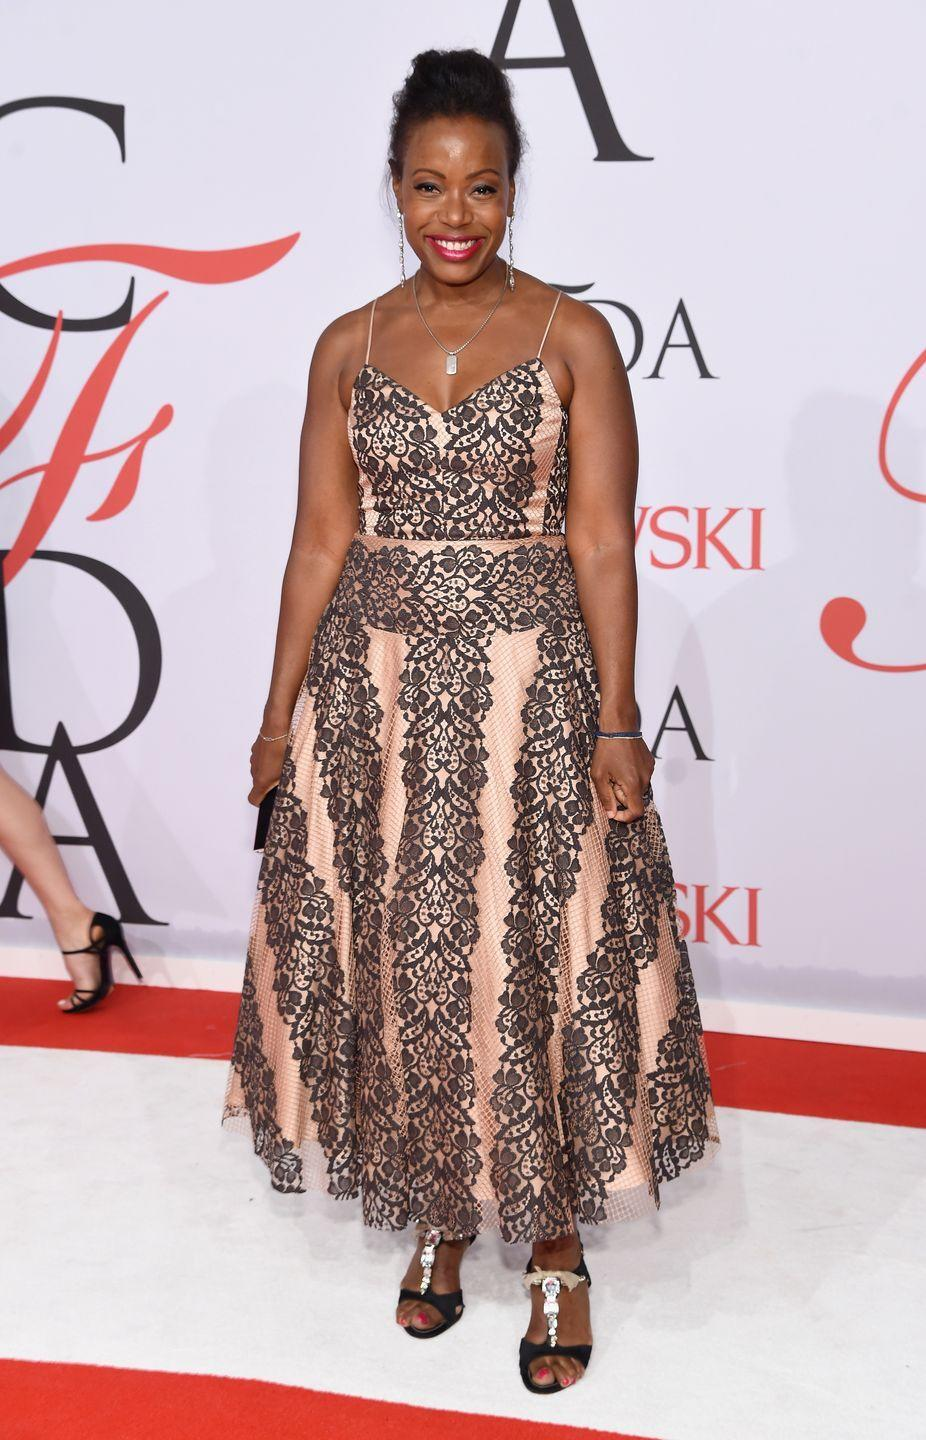 "<p>Tracy Reese is an American designer who is known for ""<a href=""https://cfda.com/members/profile/tracy-reese"" rel=""nofollow noopener"" target=""_blank"" data-ylk=""slk:rich, daring colors and unique prints"" class=""link rapid-noclick-resp"">rich, daring colors and unique prints</a> that are crafted into joyful, feminine pieces for the modern woman."" Upon graduating Parsons in 1984, Tracy Reese worked for French fashion designer Martine Sitbon at the small contemporary firm, Arlequin. Reese went on to work for many top fashion houses, including Perry Ellis, where she became design director for women's portfolio. In 1997, Reese launched her eponymous line which received high praise. Her <a href=""https://cfda.com/members/profile/tracy-reese"" rel=""nofollow noopener"" target=""_blank"" data-ylk=""slk:line"" class=""link rapid-noclick-resp"">line</a> combined bold hues and prints with modern silhouettes and shapes. She launched her second line, Plenty by Tracy Reese, in 1998. In 2014, Reese launched DRESSES by Tracy Reese, a line of contemporary dresses that can take you from work to a special occasion. Reese is a celebrity favorite, having dressed Michelle Obama, Sarah Jessica Parker, and Taylor Swift. She serves on the CFDA Board of Directors, and is involved in many social causes such as the AIDS Fund Committee for the New York Community Trust. </p>"